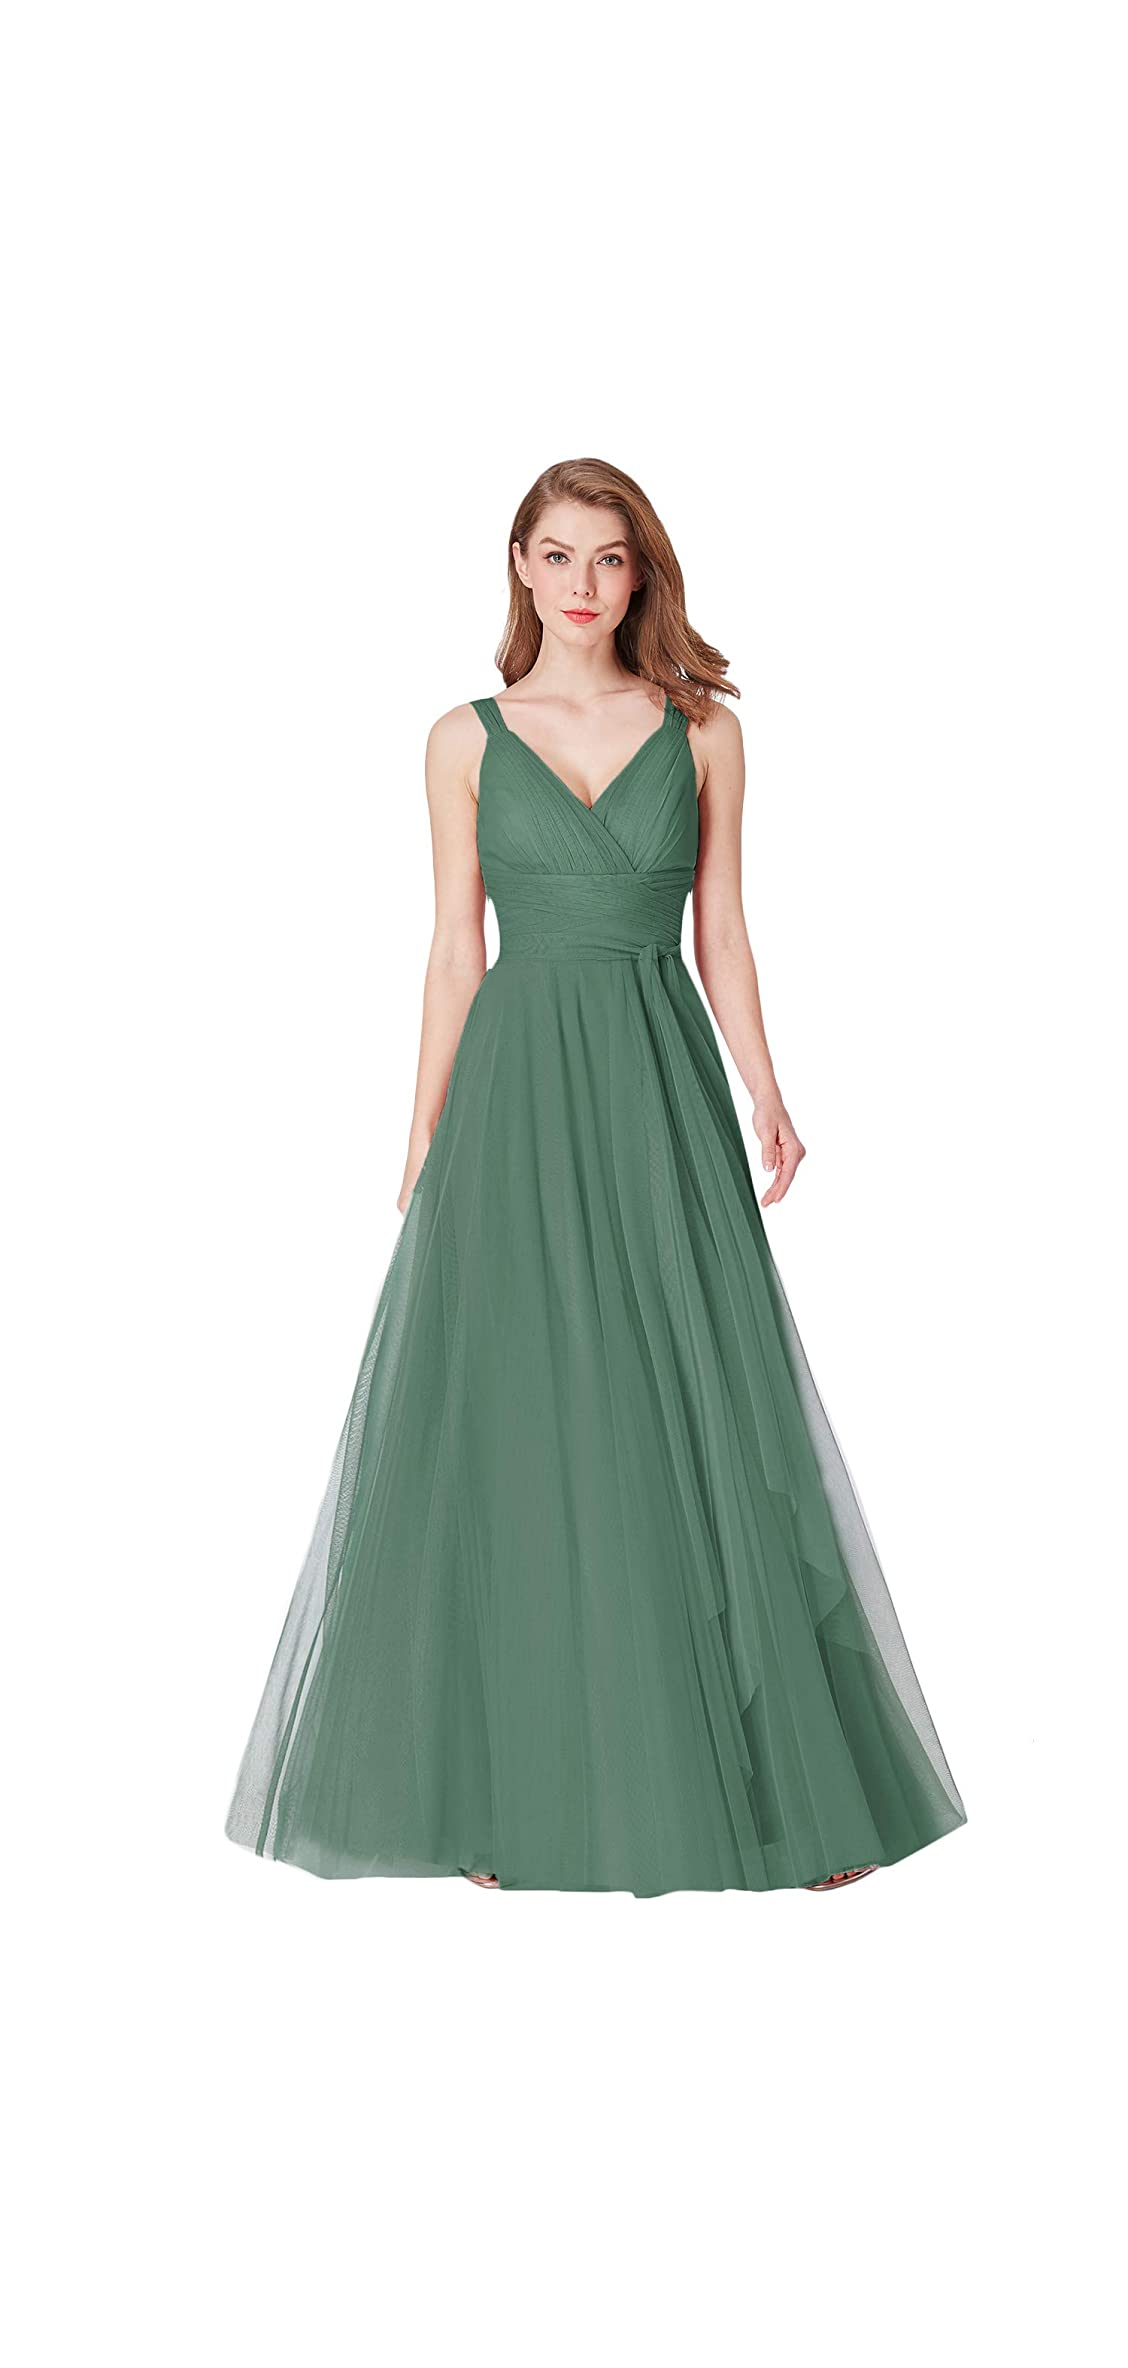 Women's Elegant V Neck Floor Length A Line Empire